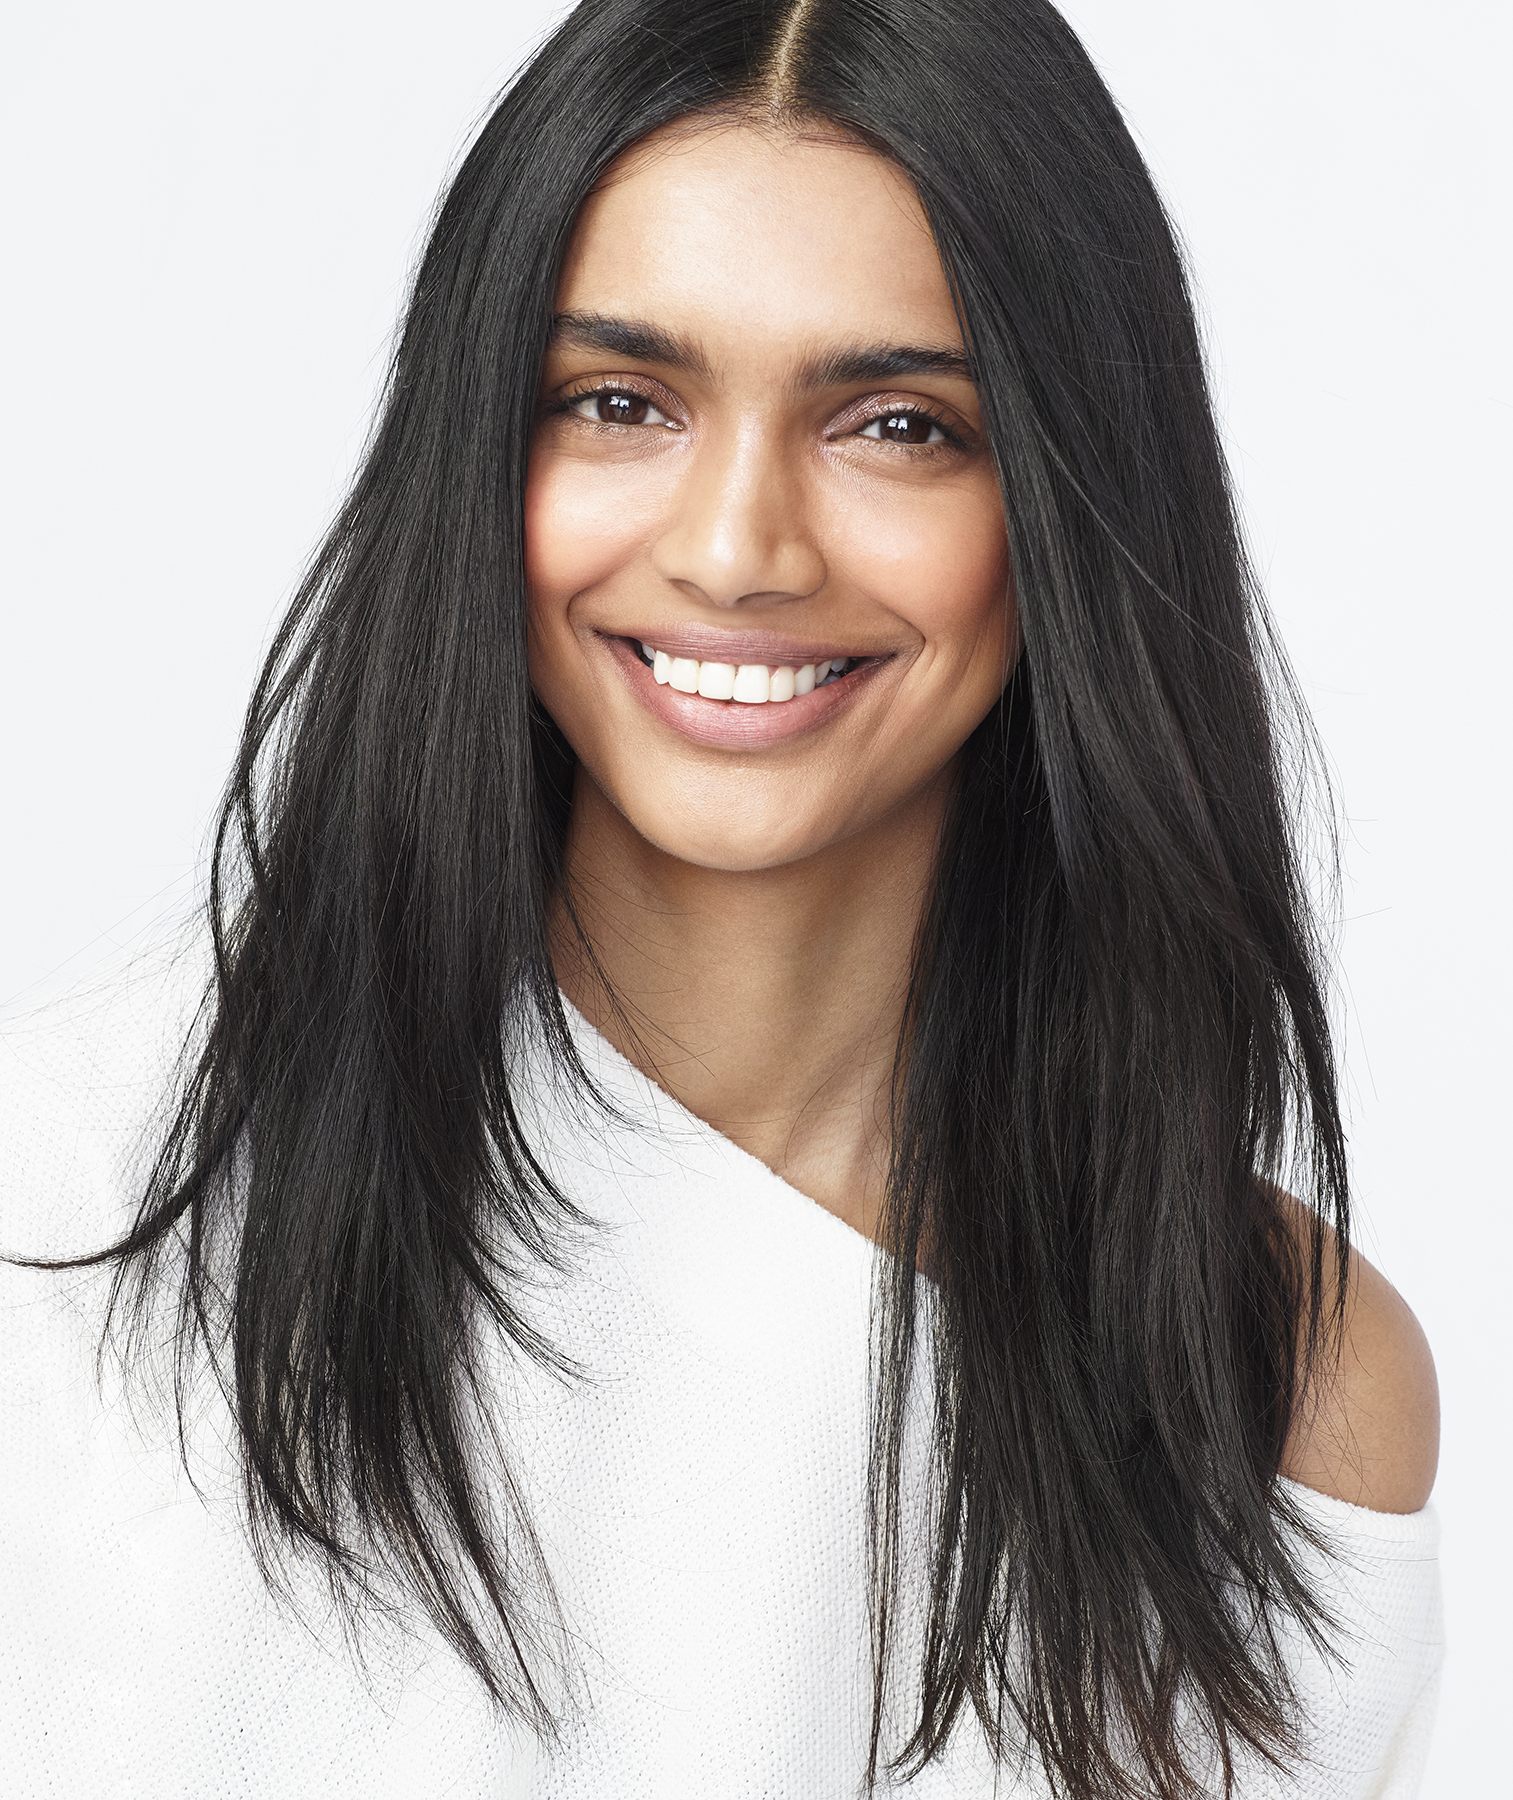 Dark-haired model with long straight hair